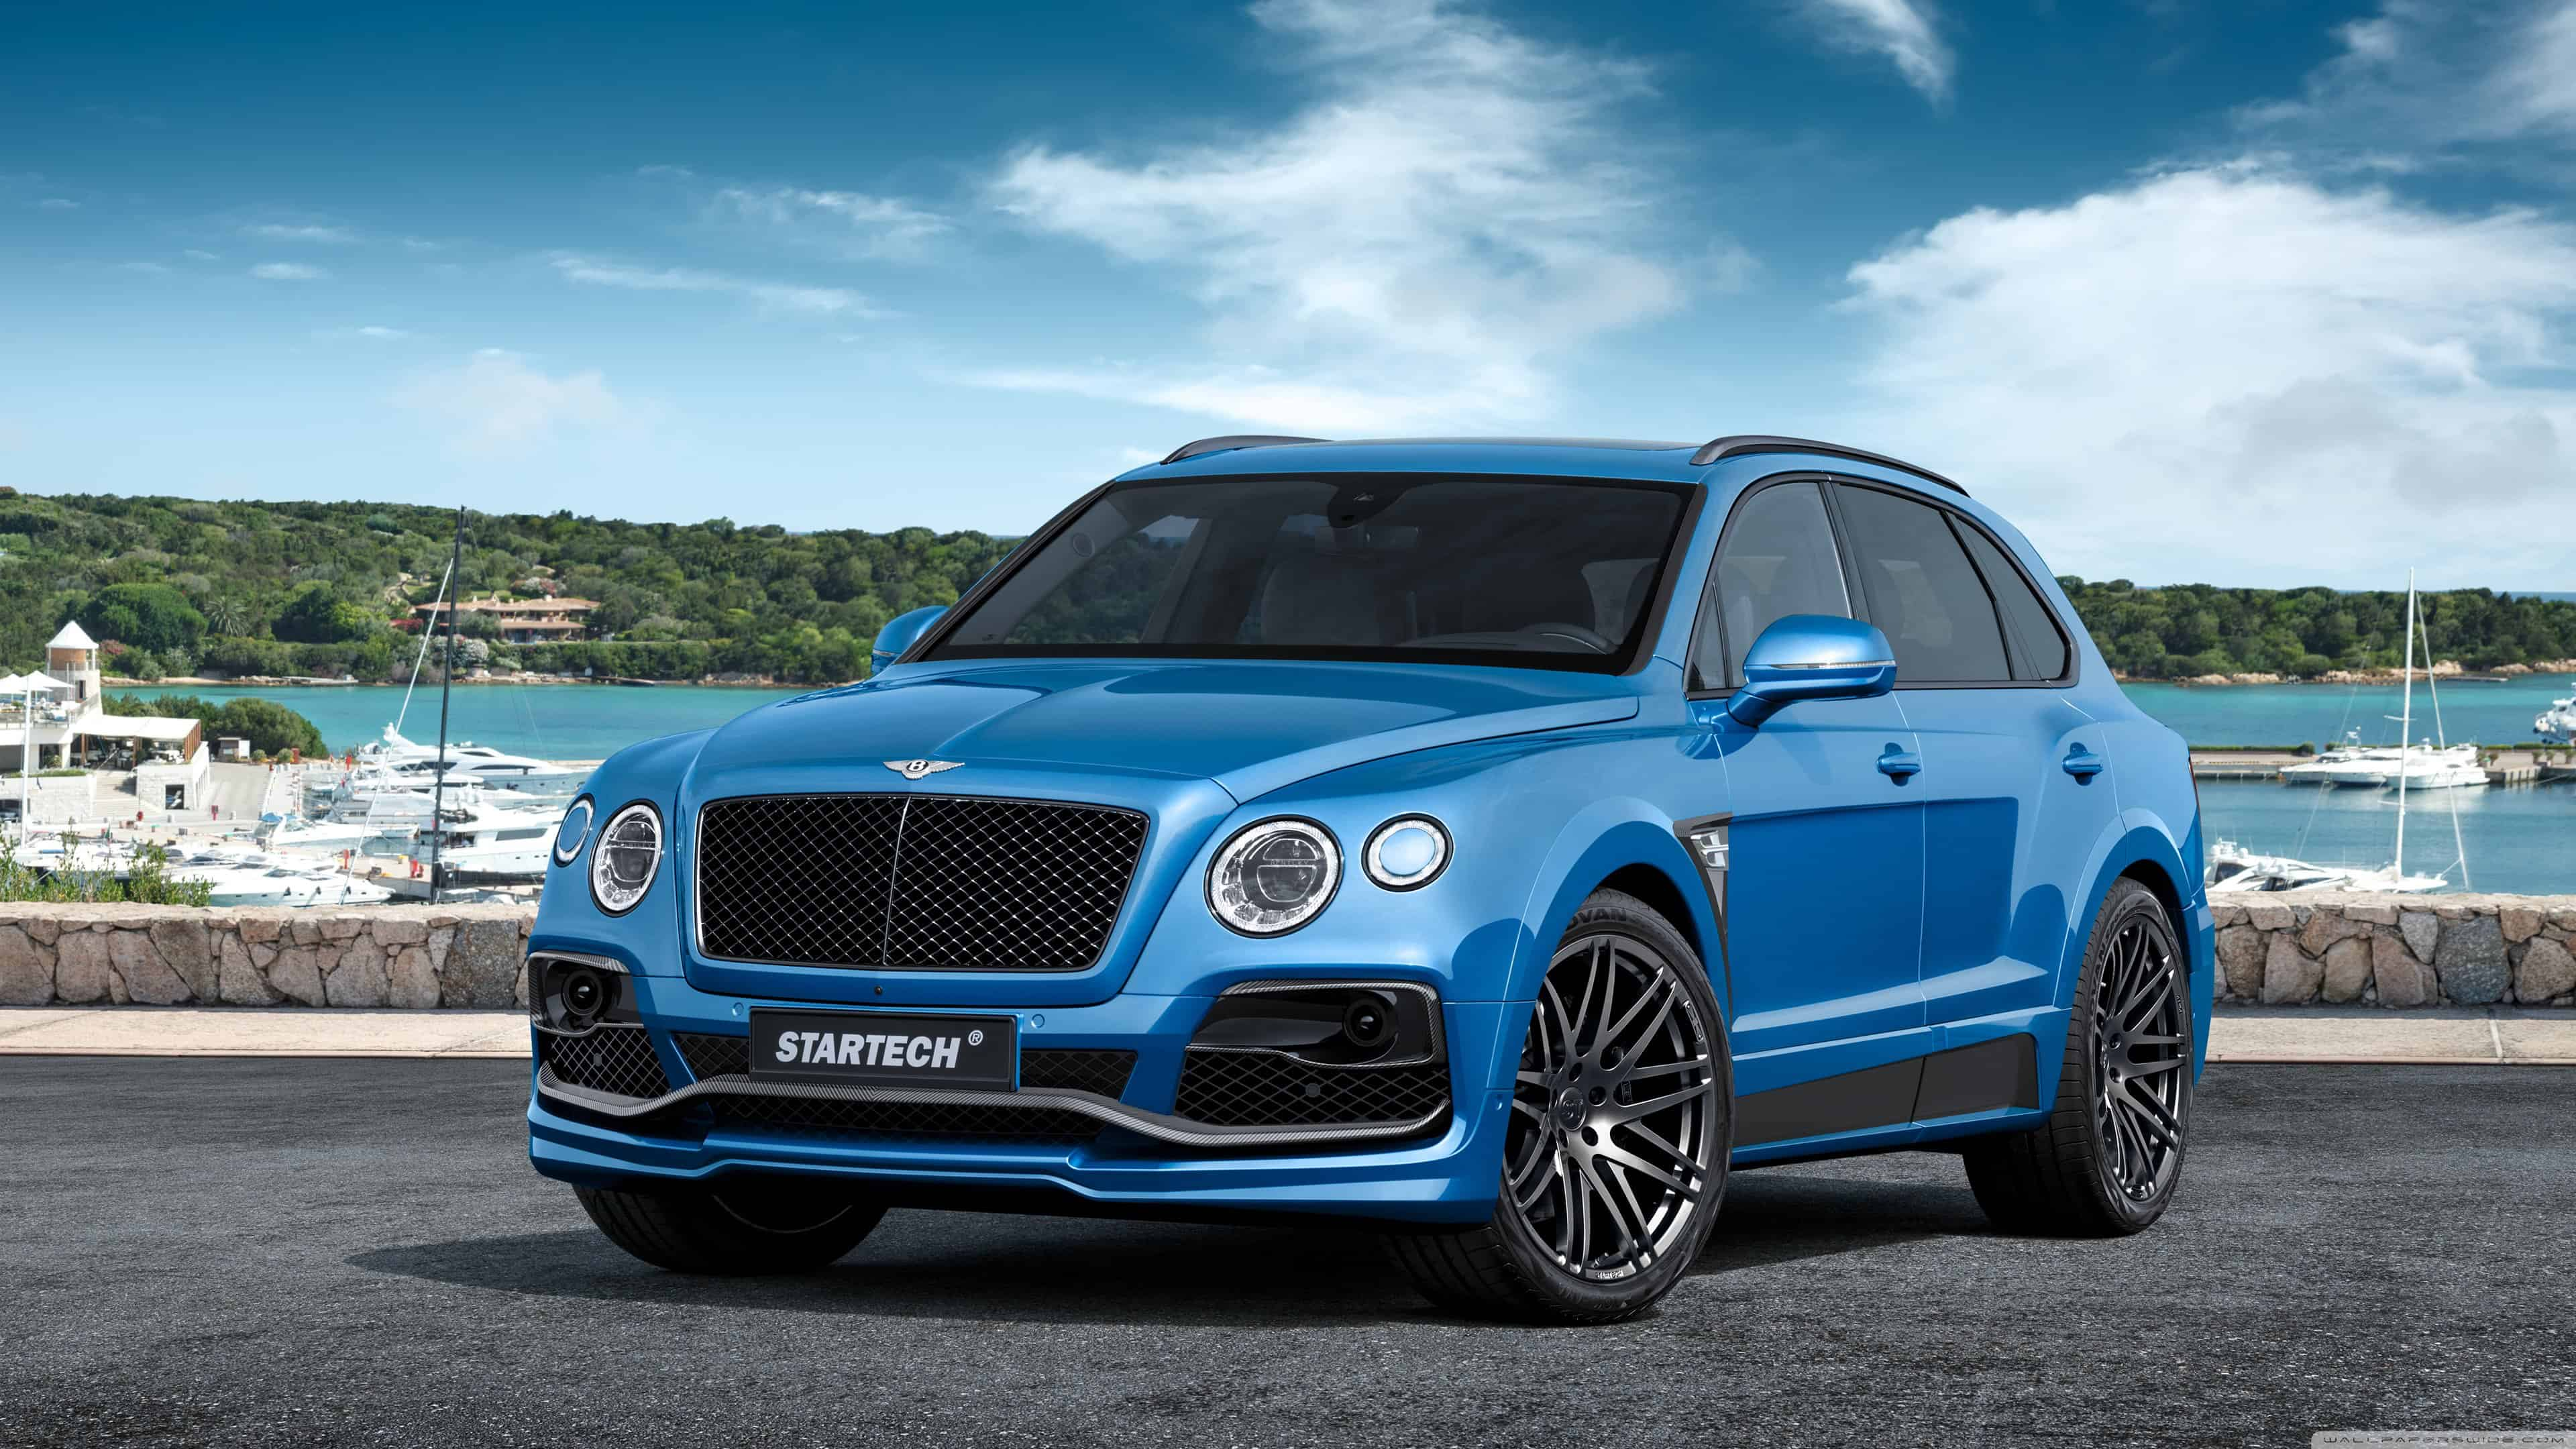 Bentley bentayga uhd 4k wallpaper pixelz bently bentayga uhd 4k wallpaper voltagebd Image collections